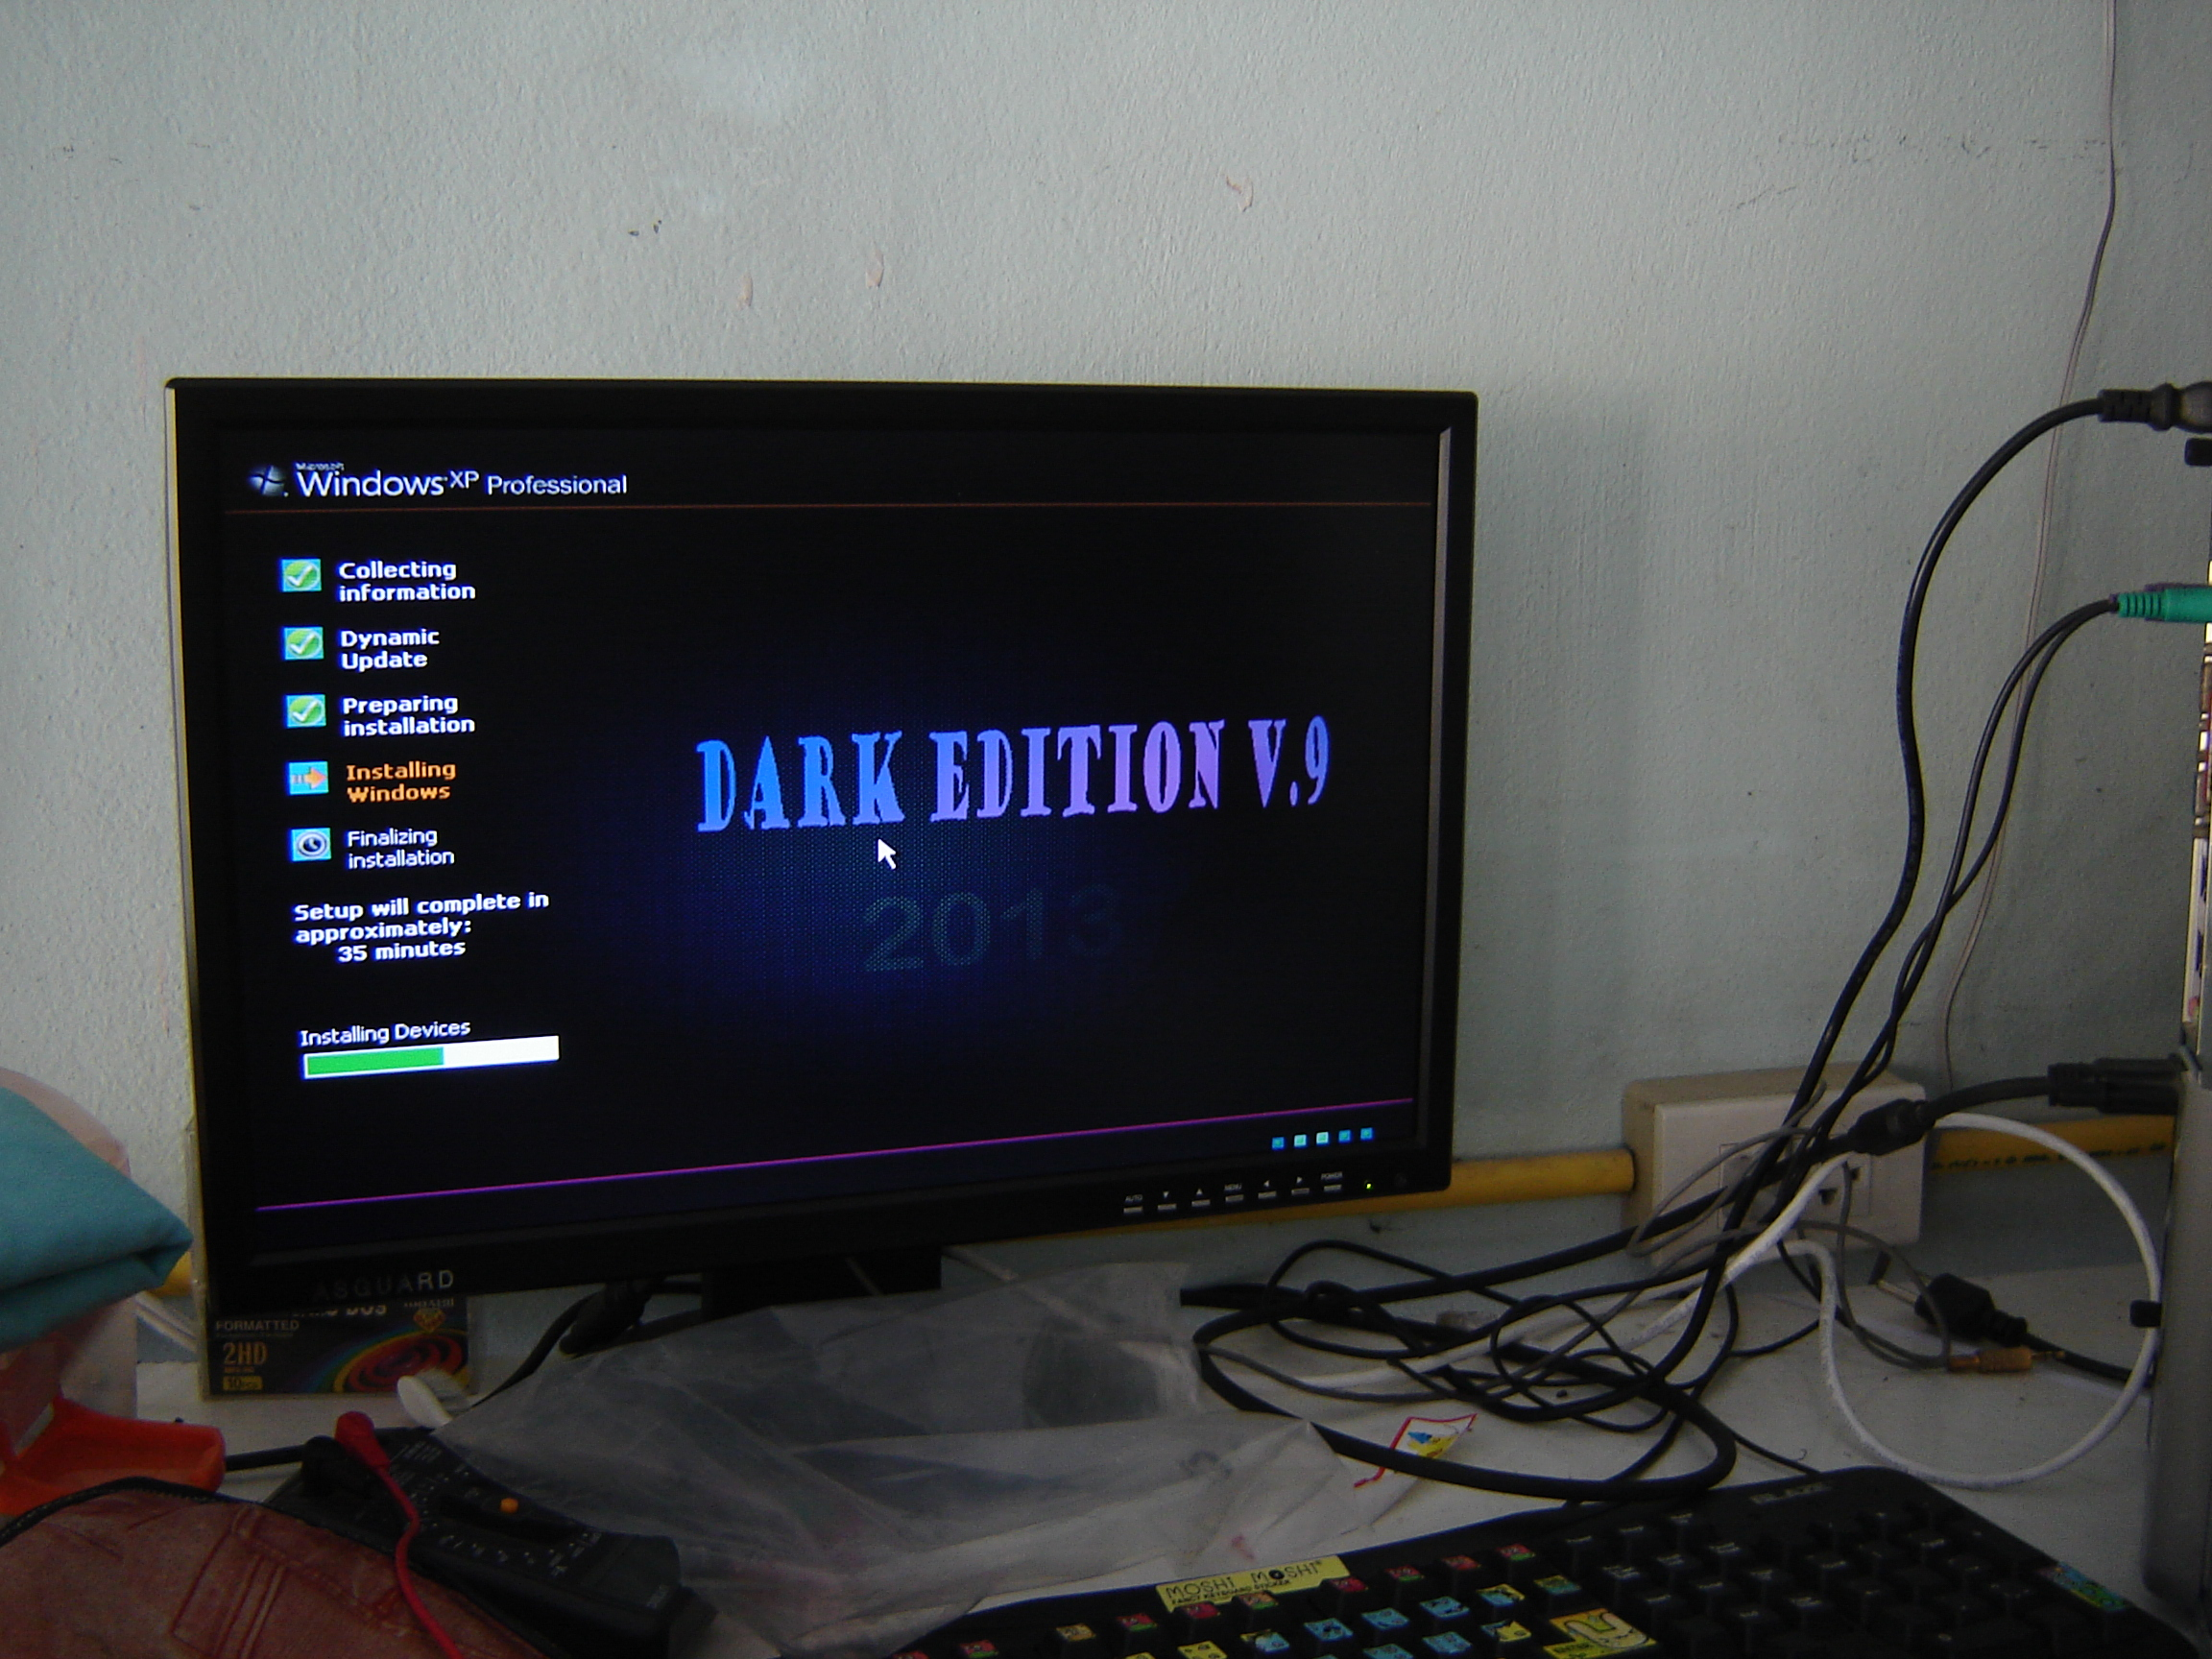 ใช้งาน Windows XP SP3 DARK EDITION V.9 All New SATA 2013